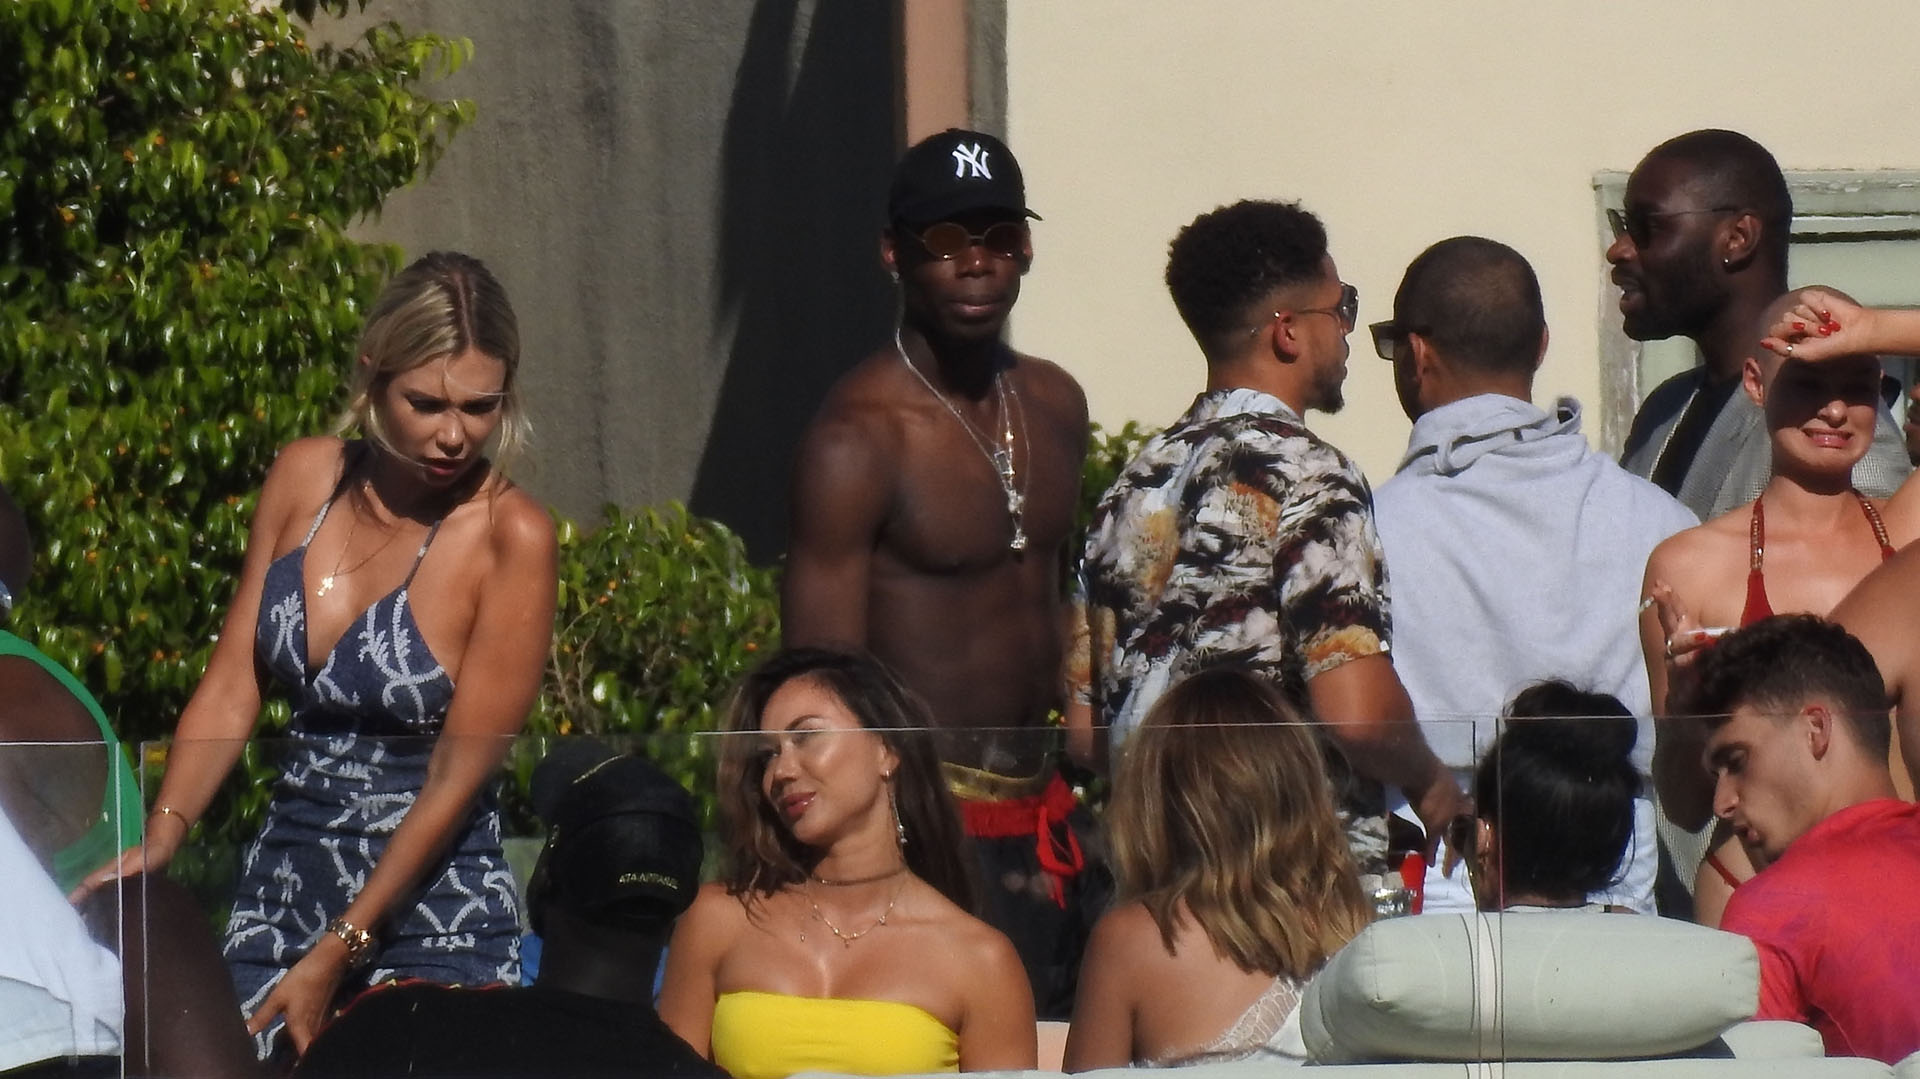 Pogba debe unirse al Manchester united cuando finalice sus vacaciones (Photo © 2018 Backgrid/The Grosby Group)